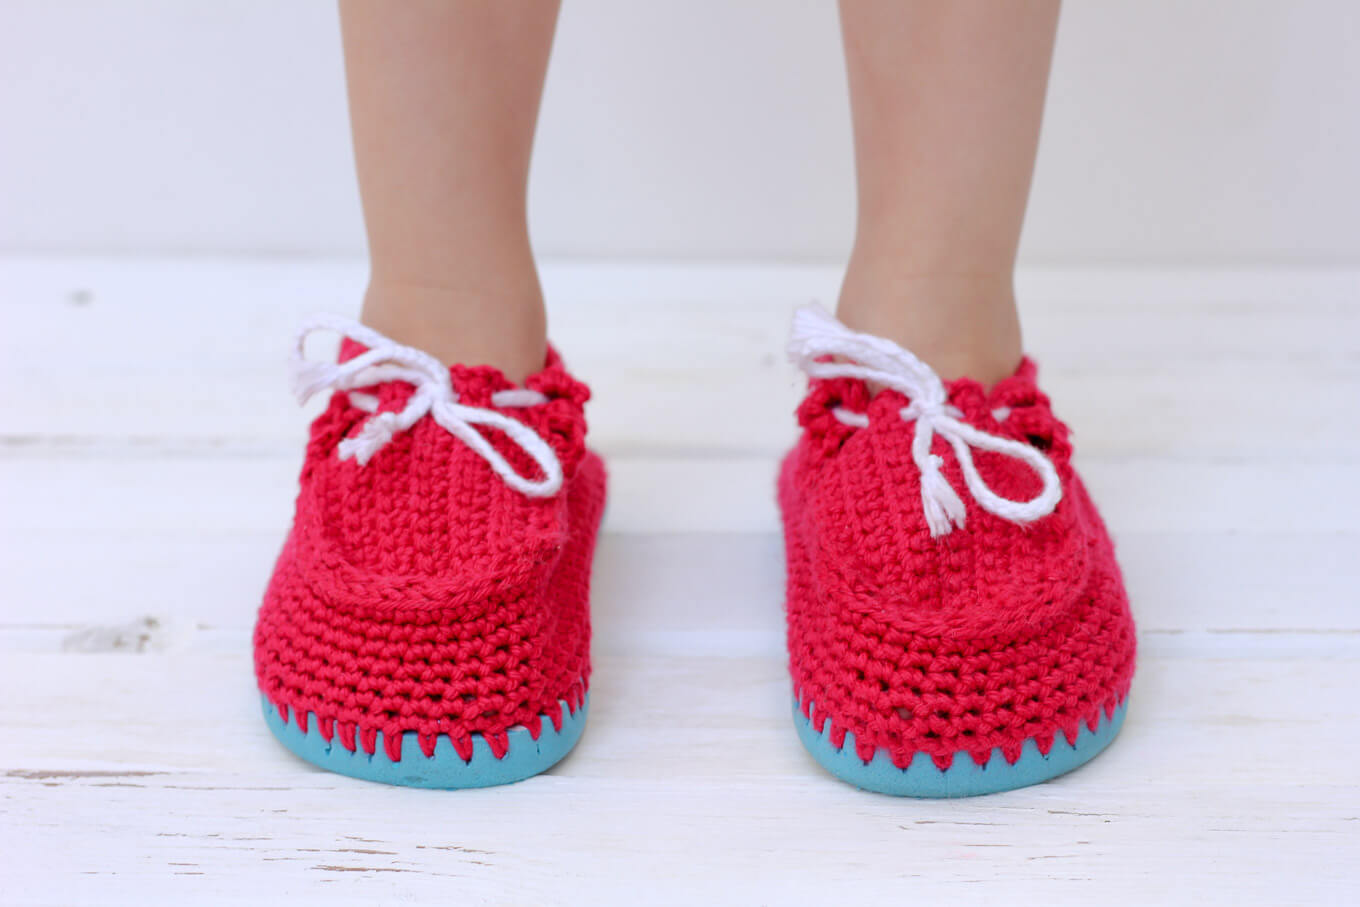 Turn cheap flip flops into crochet toddler slippers with this free pattern. The boat shoe style works well for girls and boys. Quick and portable project!